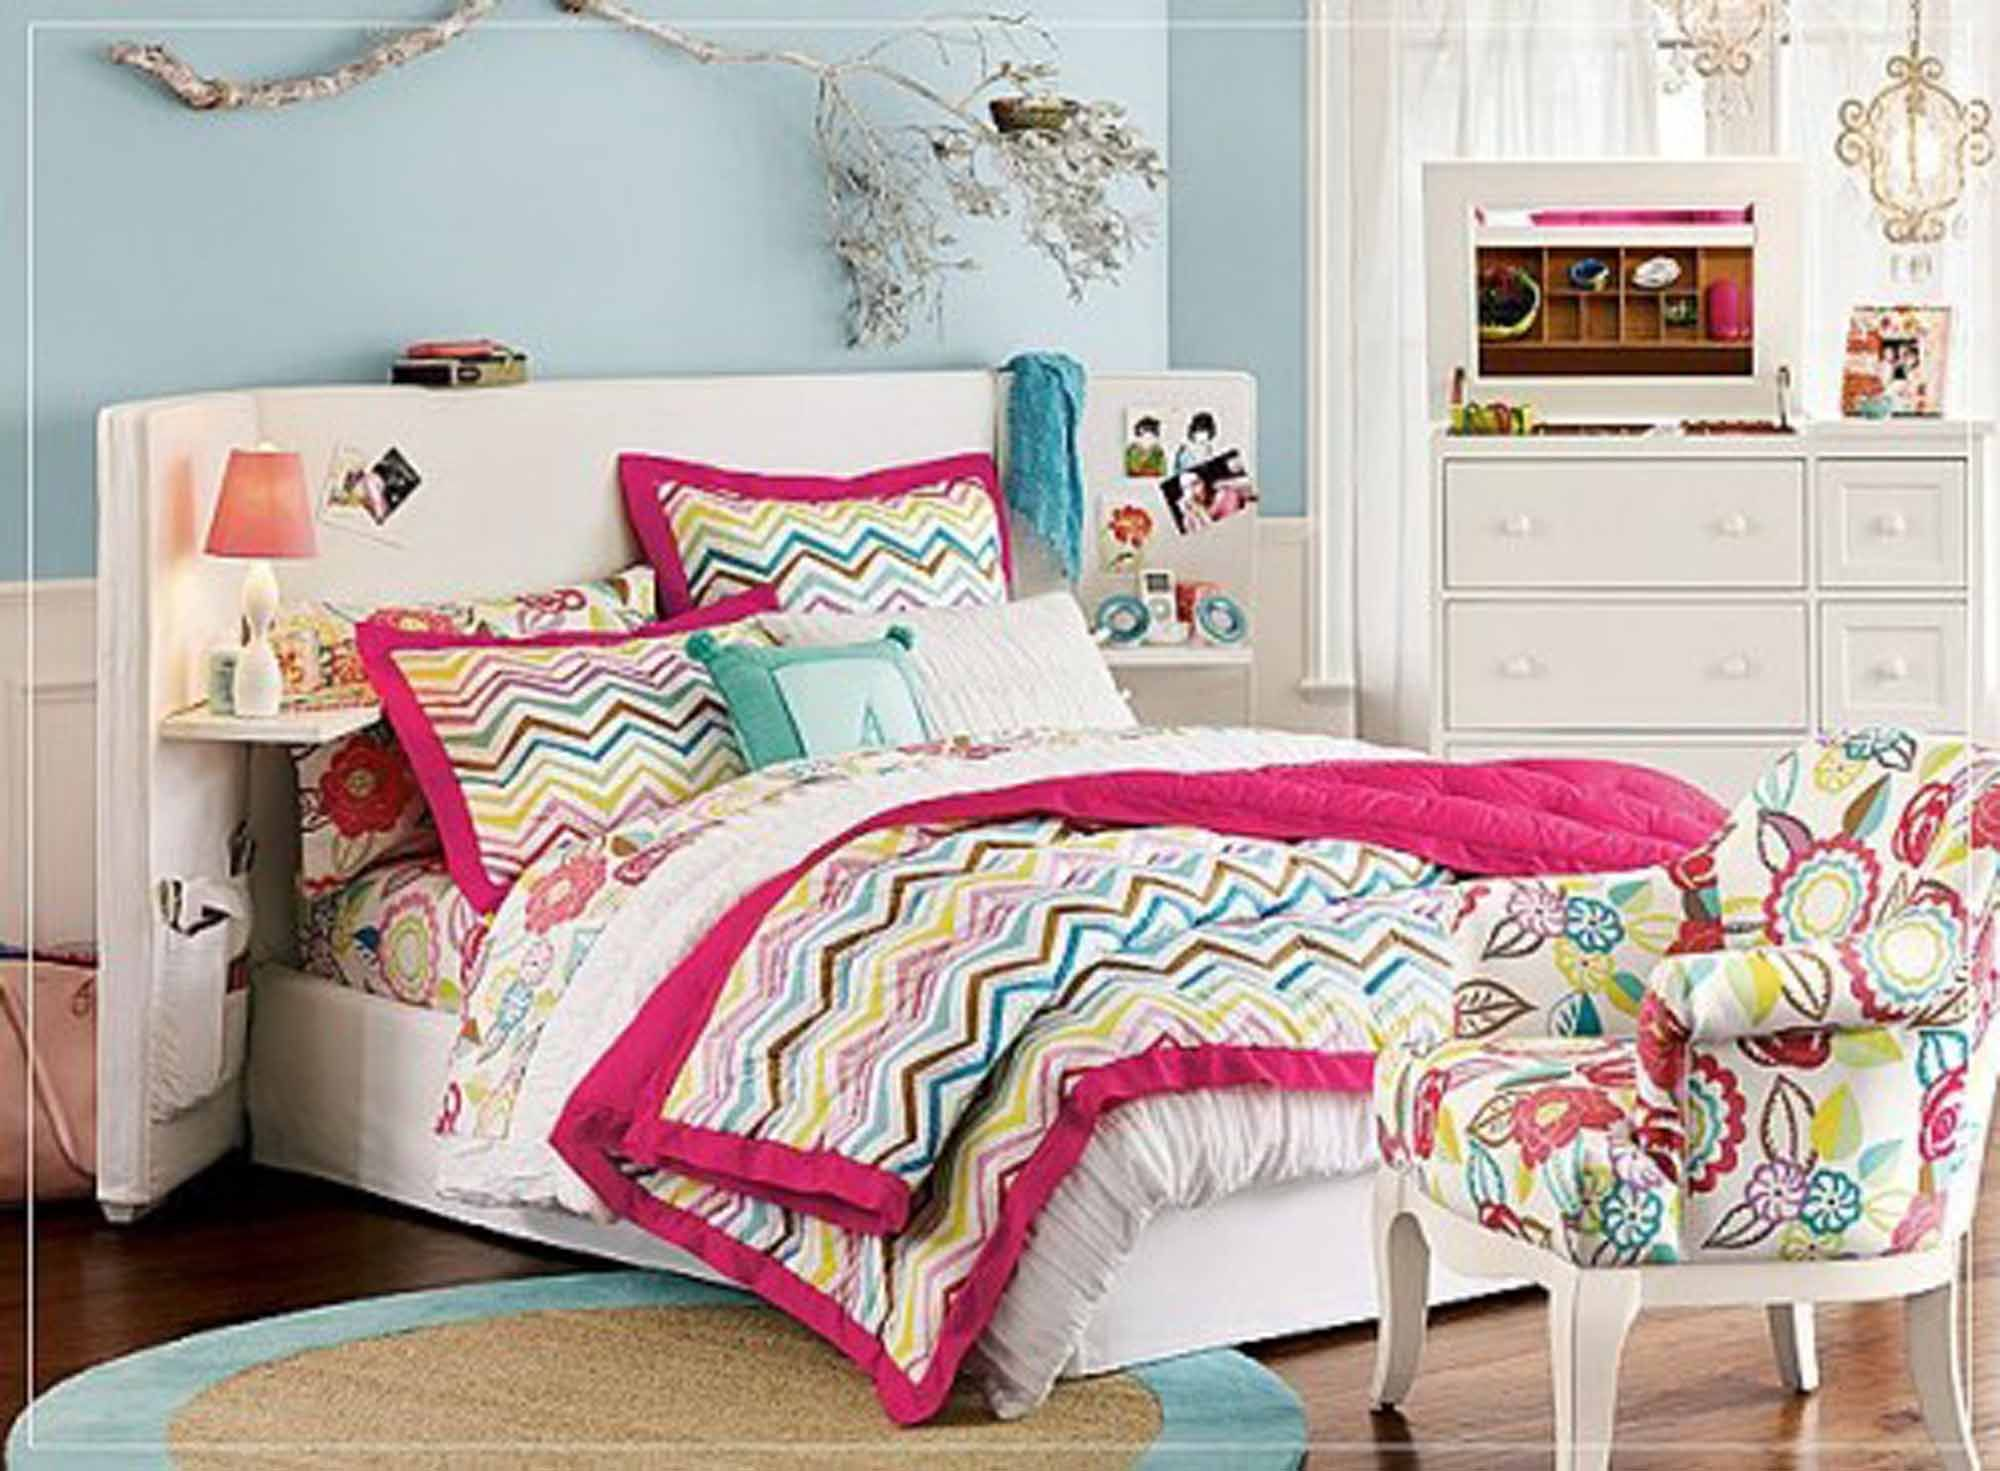 Bedroom Ideas For Girl Teens Part - 34: BEST Fresh Decorating Ideas For Bedroom Teenage Girl